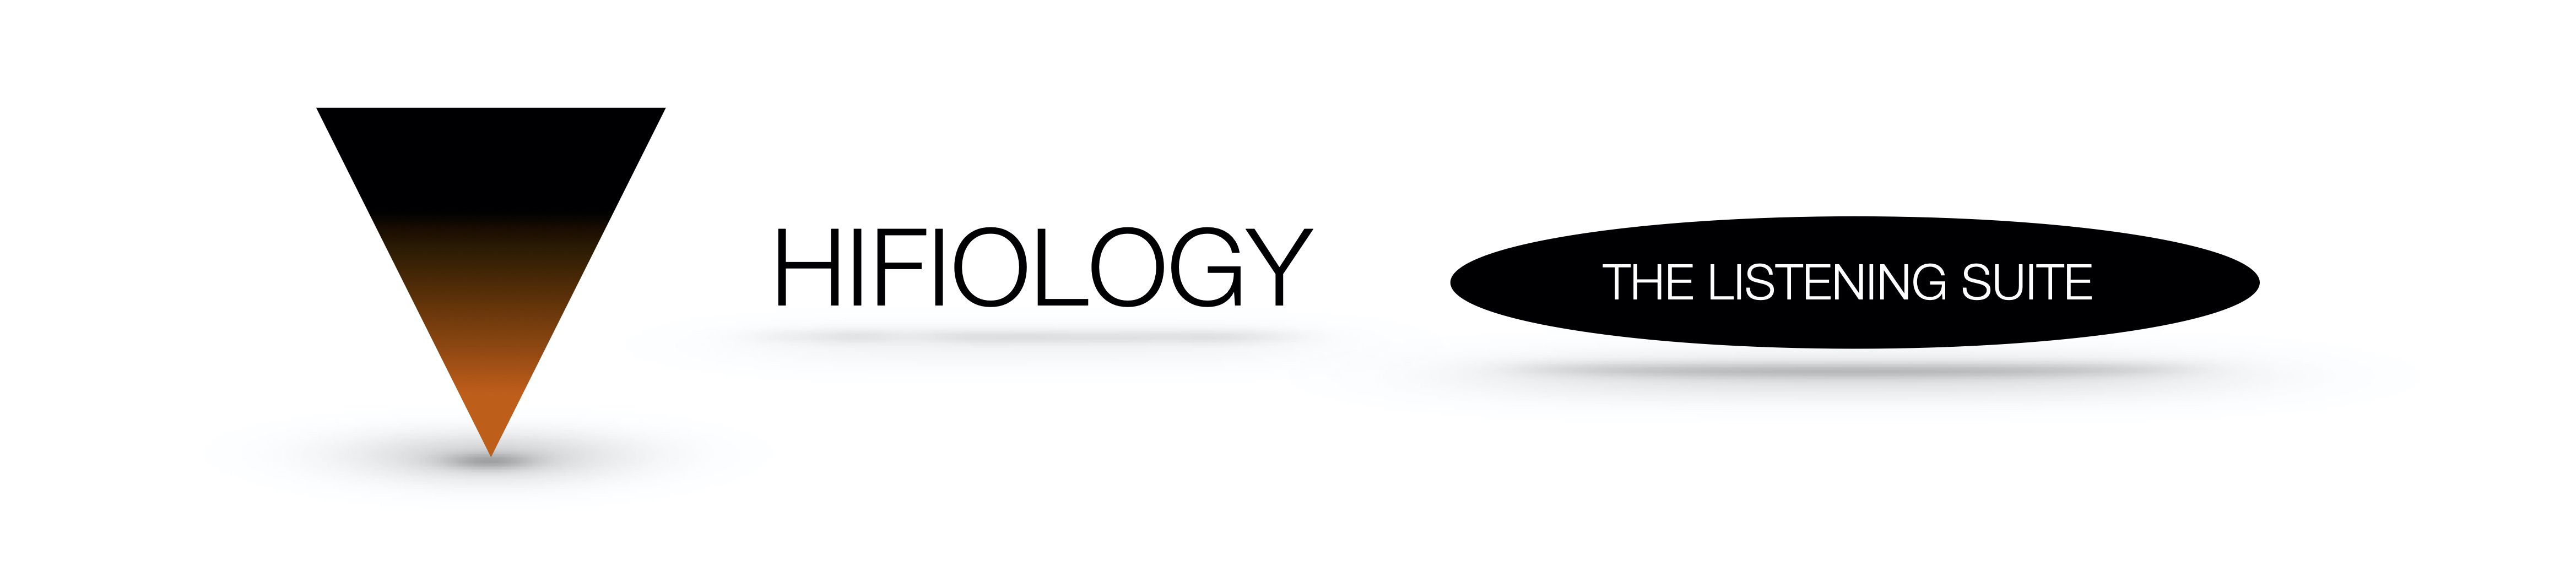 the-listening-suite-hifiology-logo.jpg